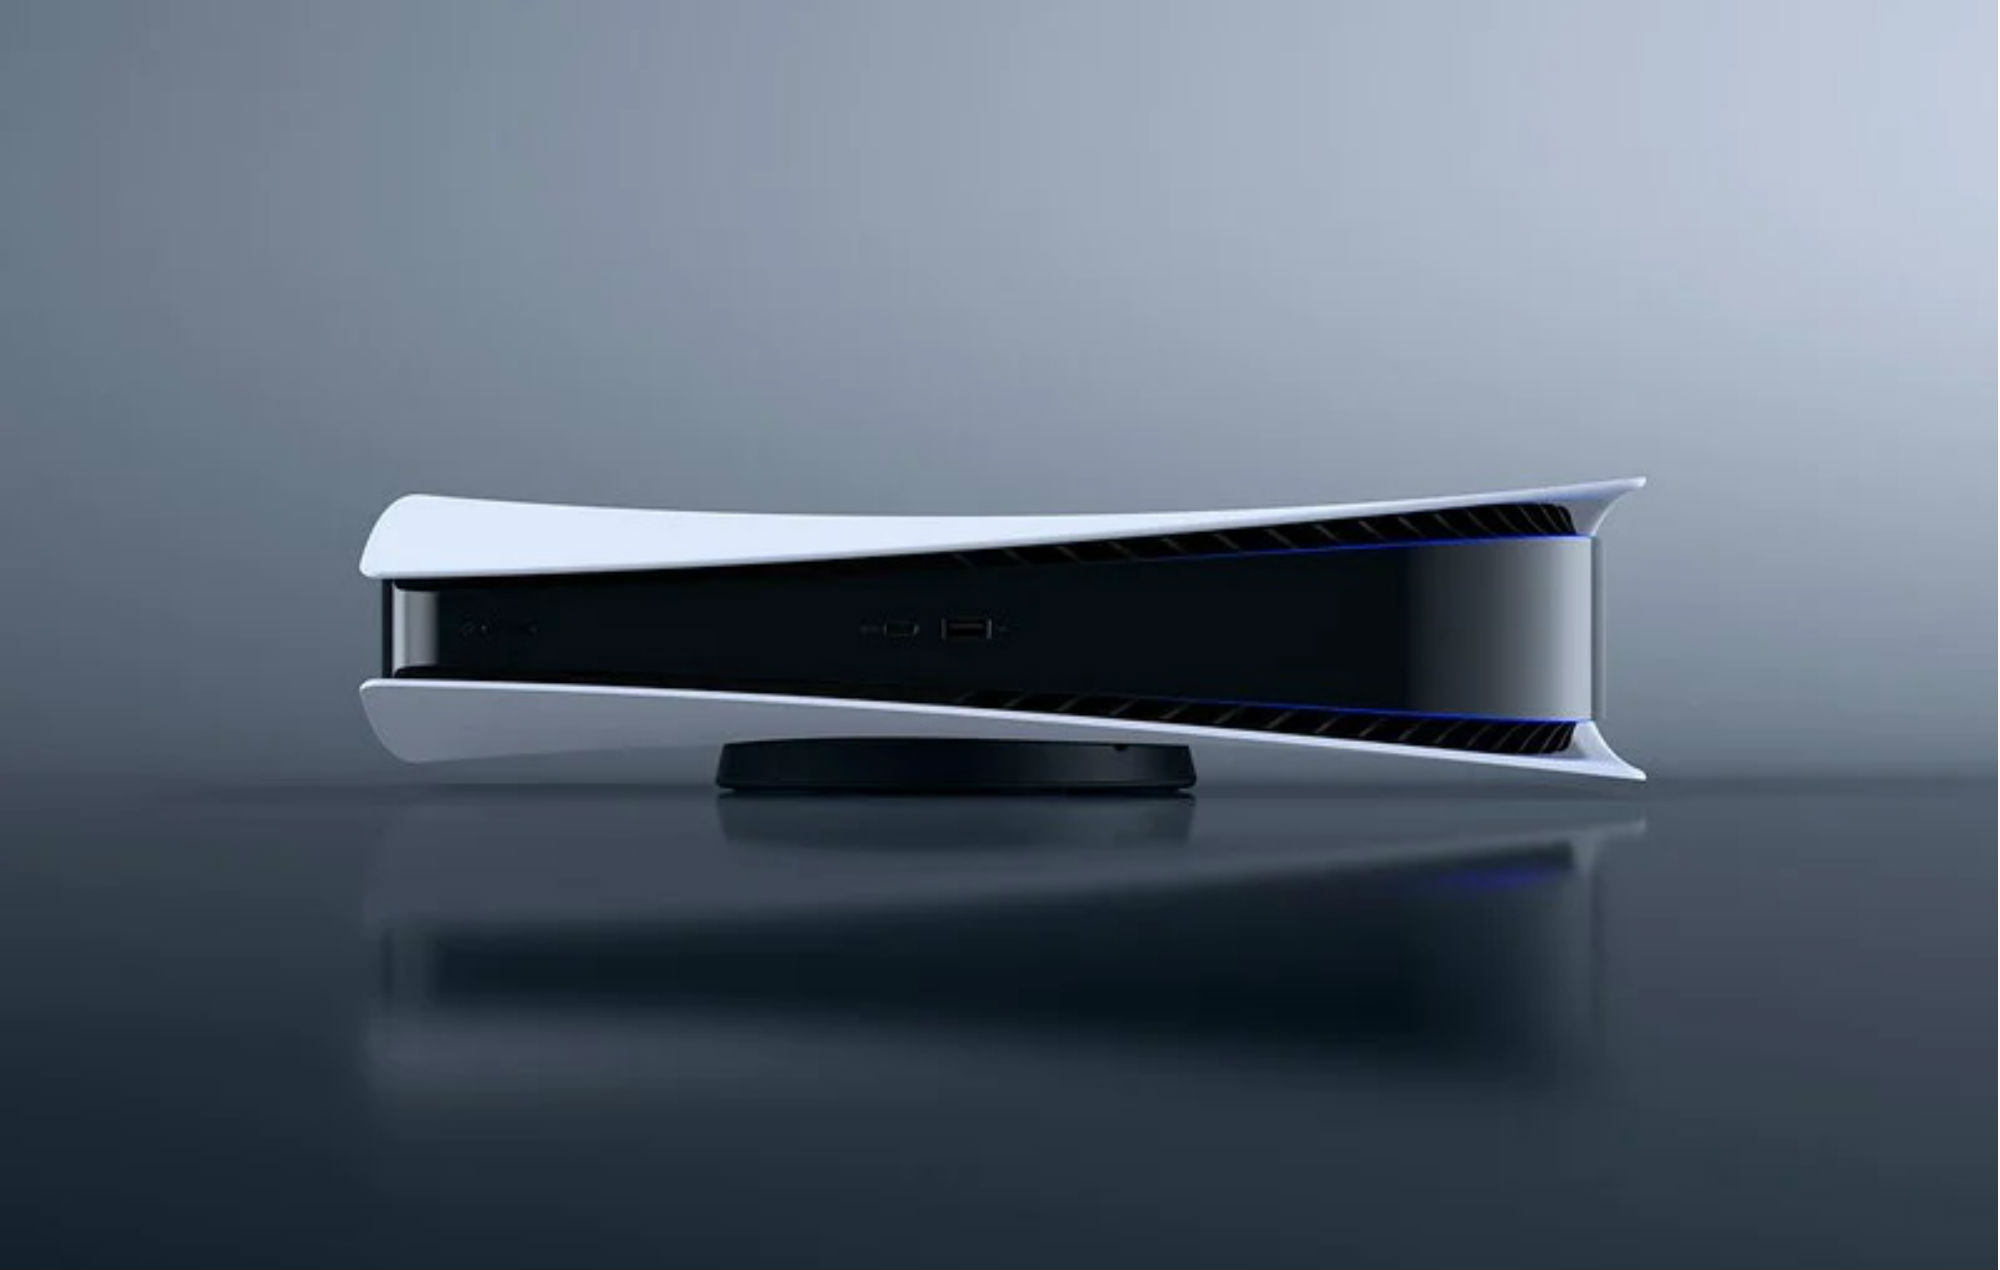 PlayStation 5 . Image Credit: Sony Interactive Entertainment